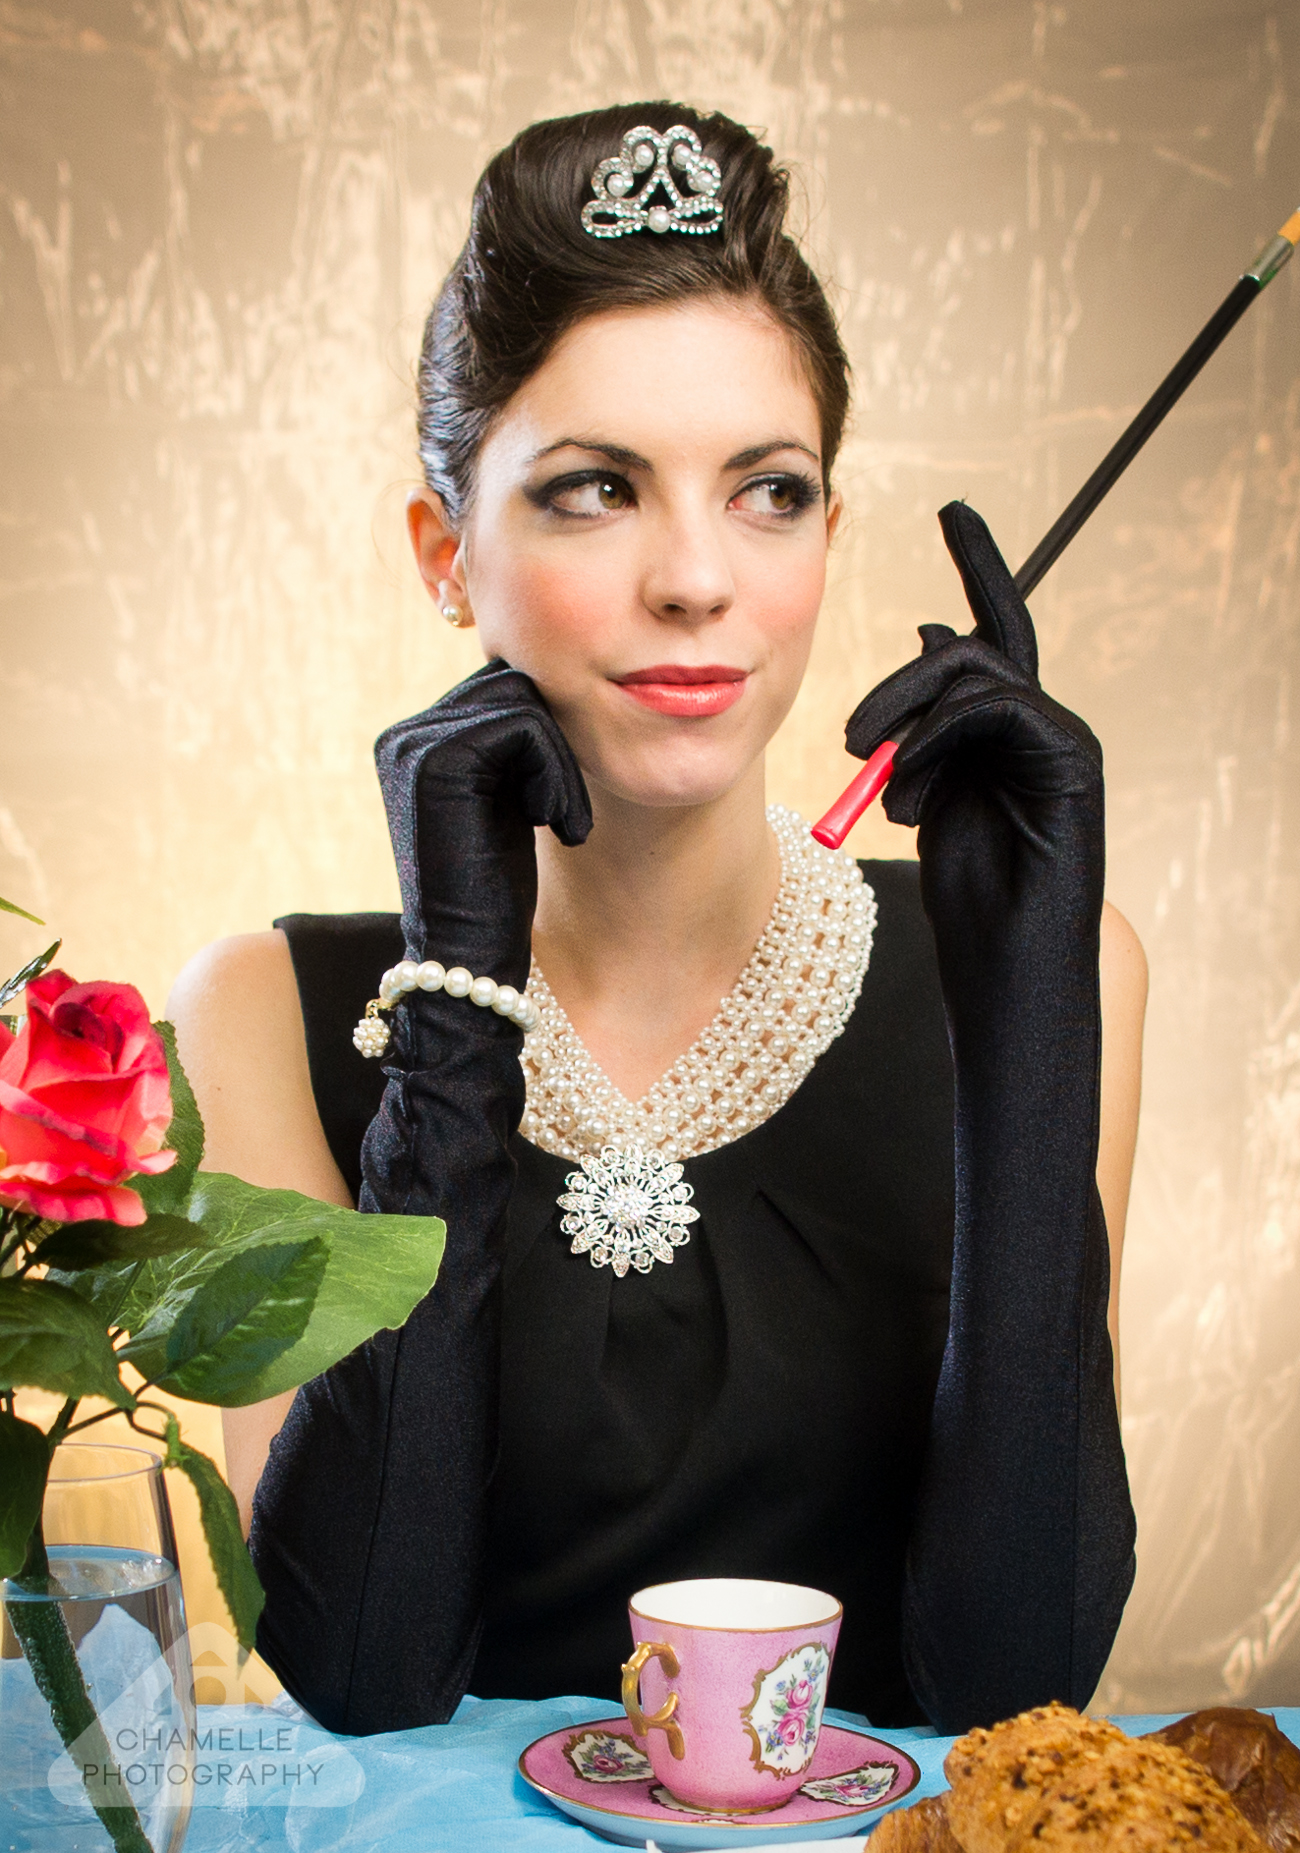 Breakfast at Tiffany's theme photoshoot - Chamelle Photography